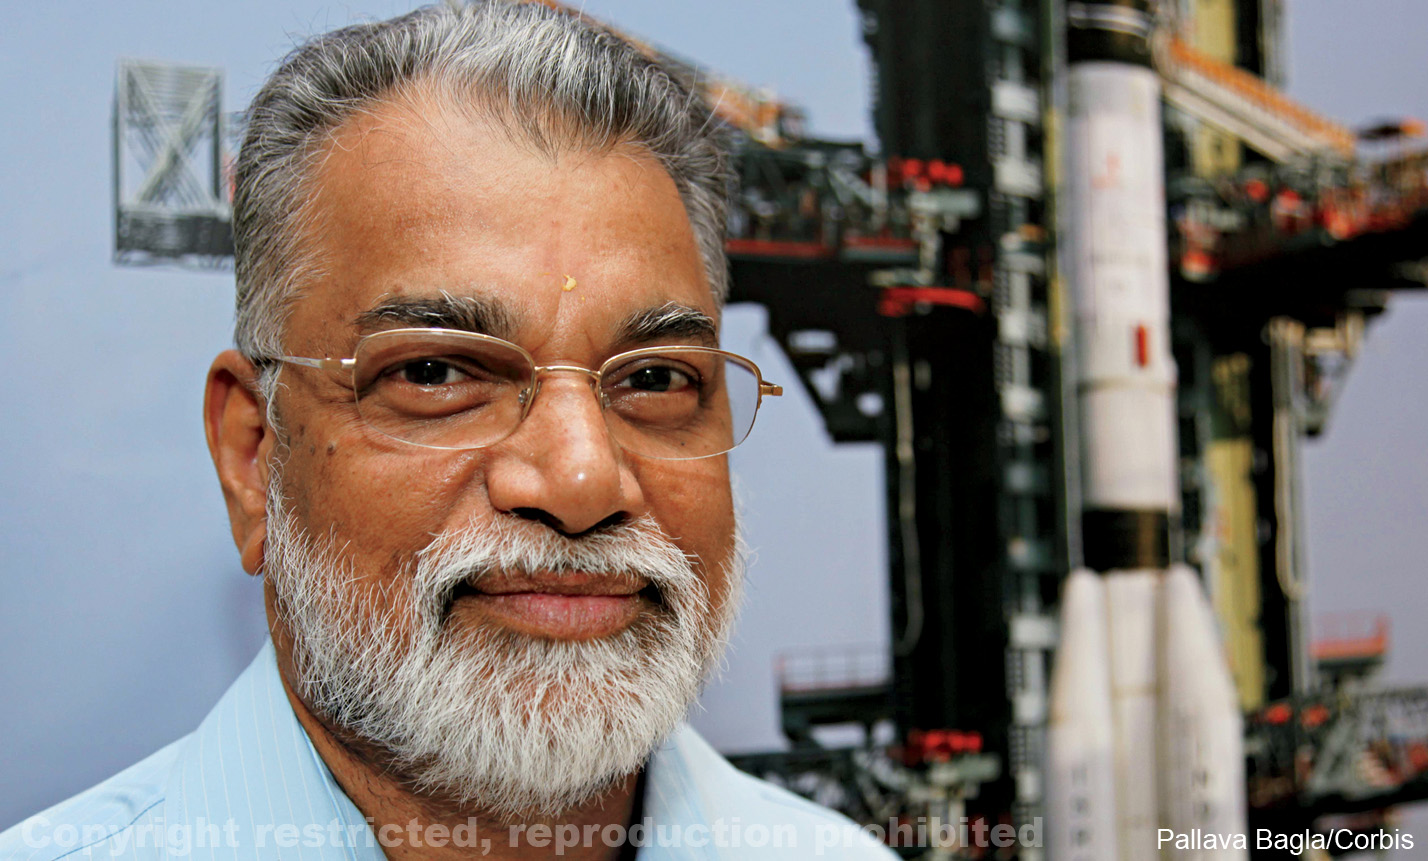 K. Radhakrishnan, Chairman of the Indian Space Research Organization